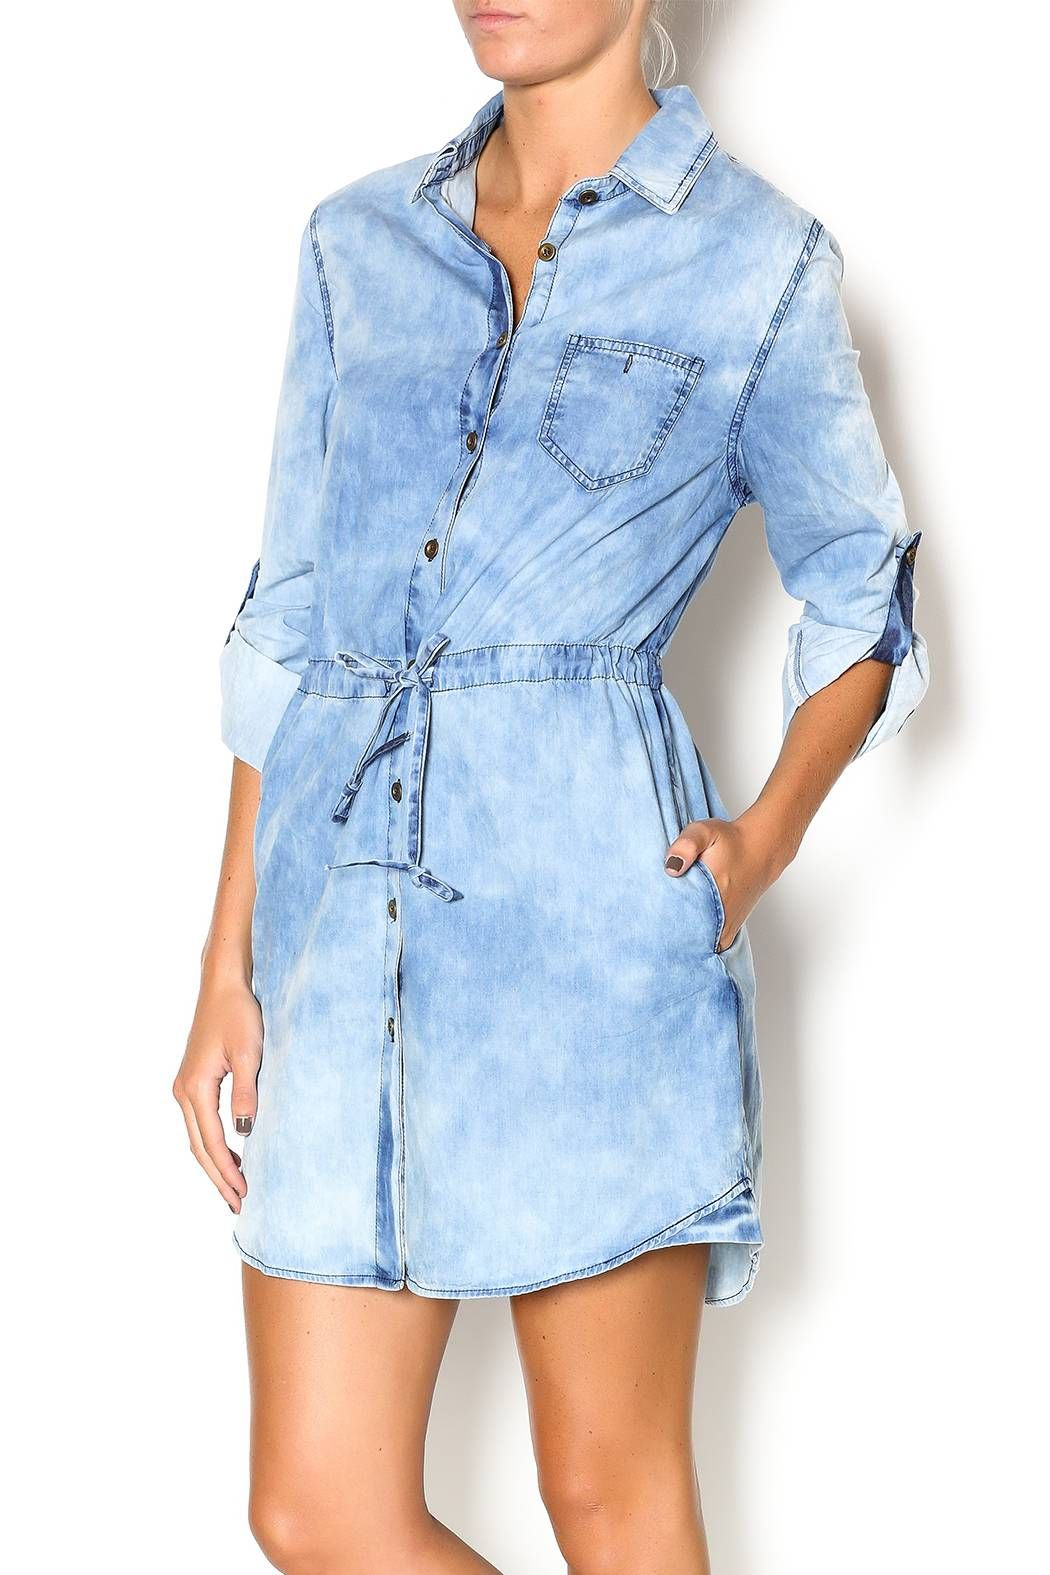 3c9fb9b9706 Acid washed denim shirt dress with tie waist and full button down front  with pocket. Denim Drawstring Dress by Wish Collection.